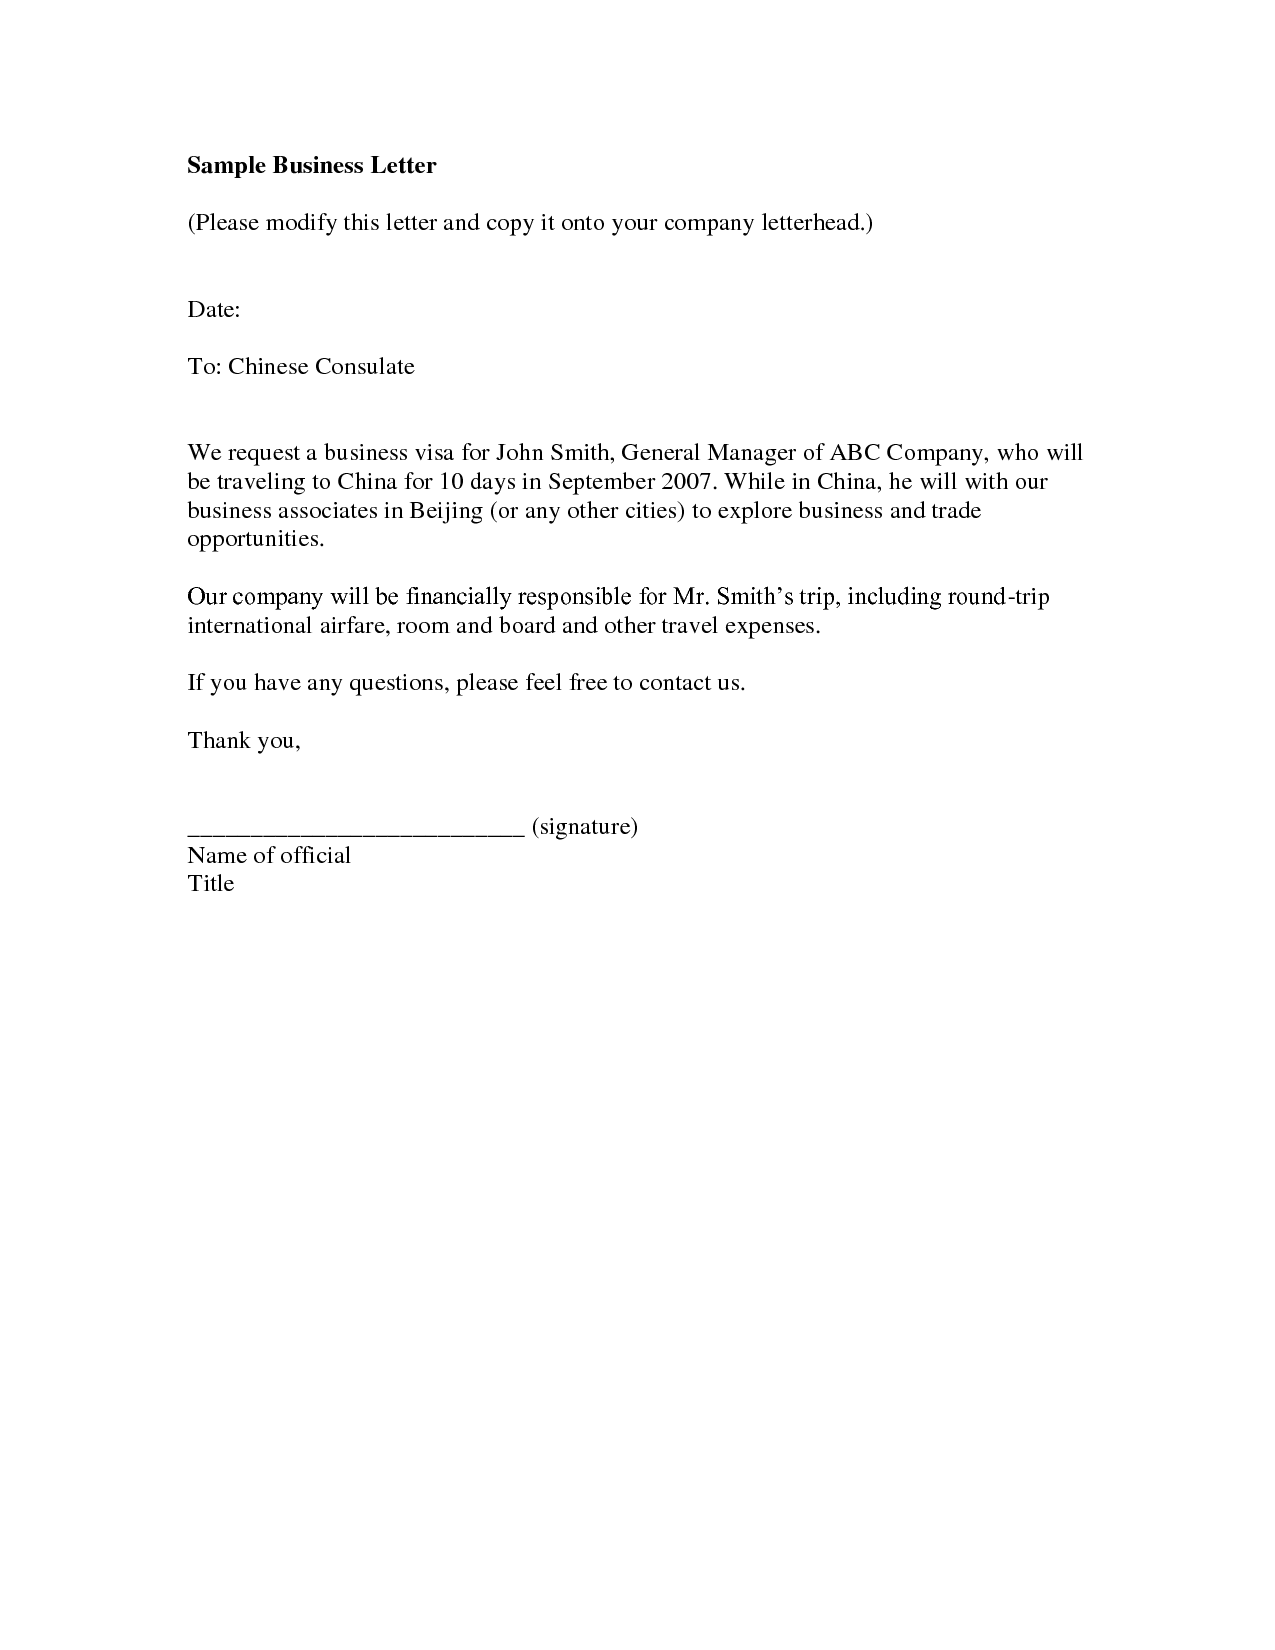 Business Introduction Letter Sample 4 – elrey de bodas